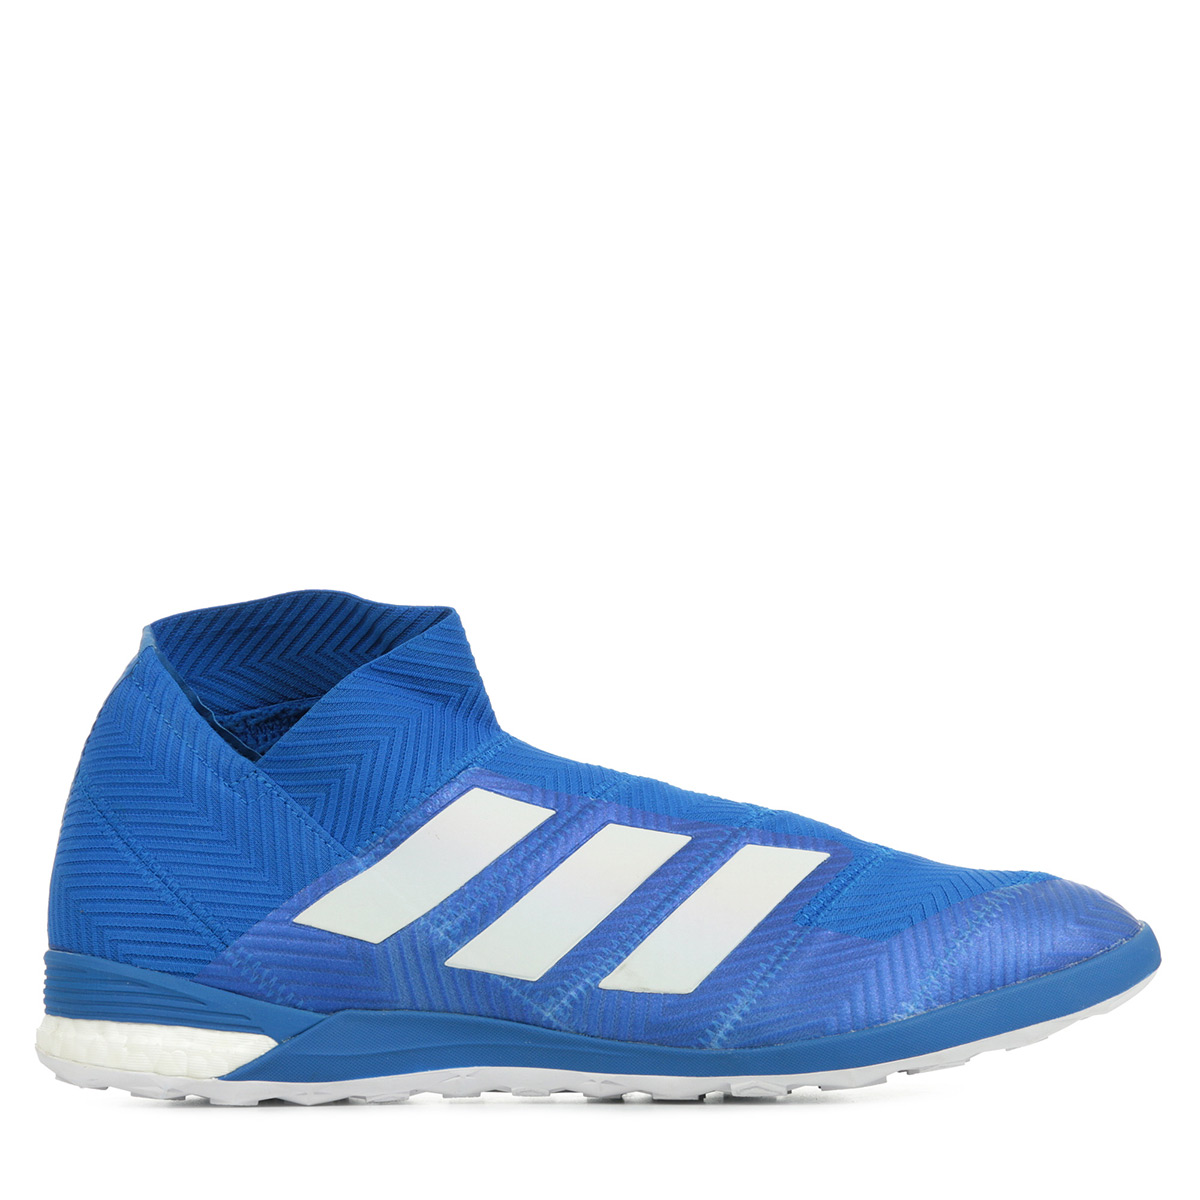 adidas Performance Nemeziz Tango 18+ In